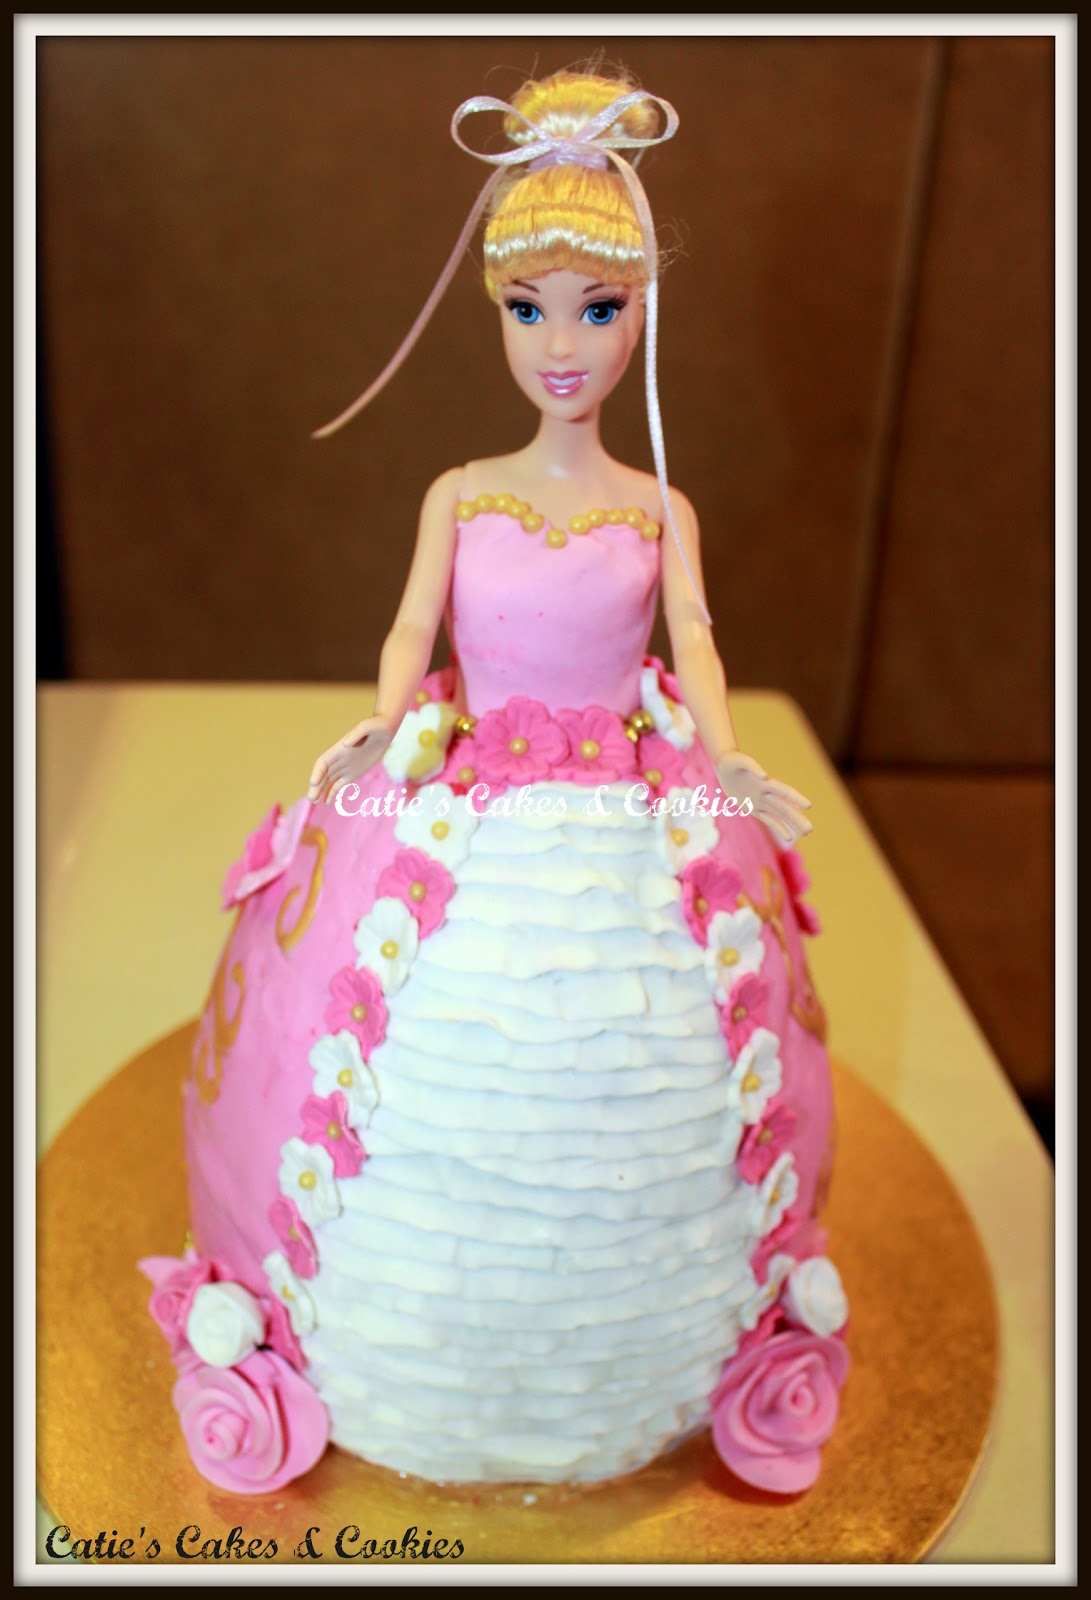 Princess Doll Cake Pictures : Catie s Cakes & Cookies: Princess Doll Cake